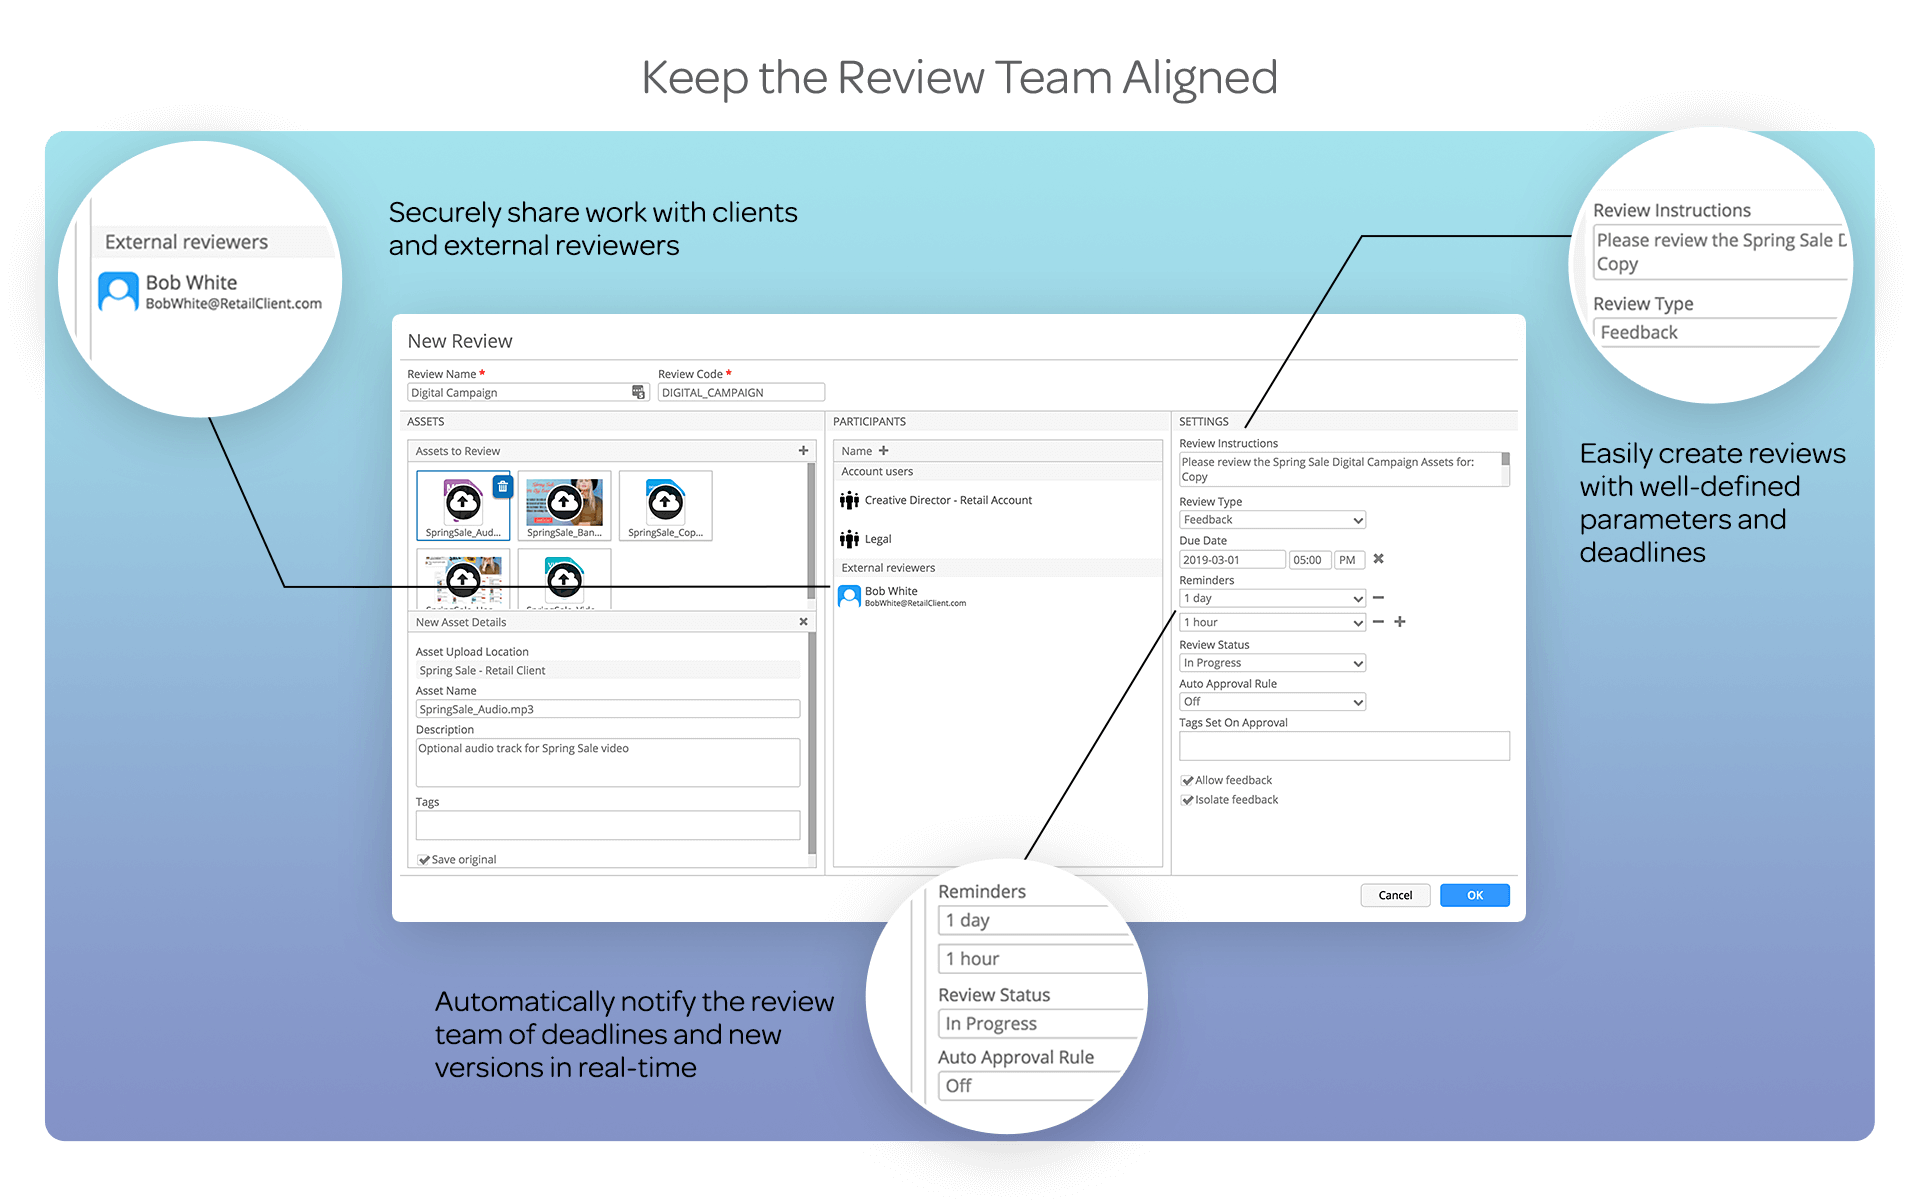 Keep Review Team Aligned